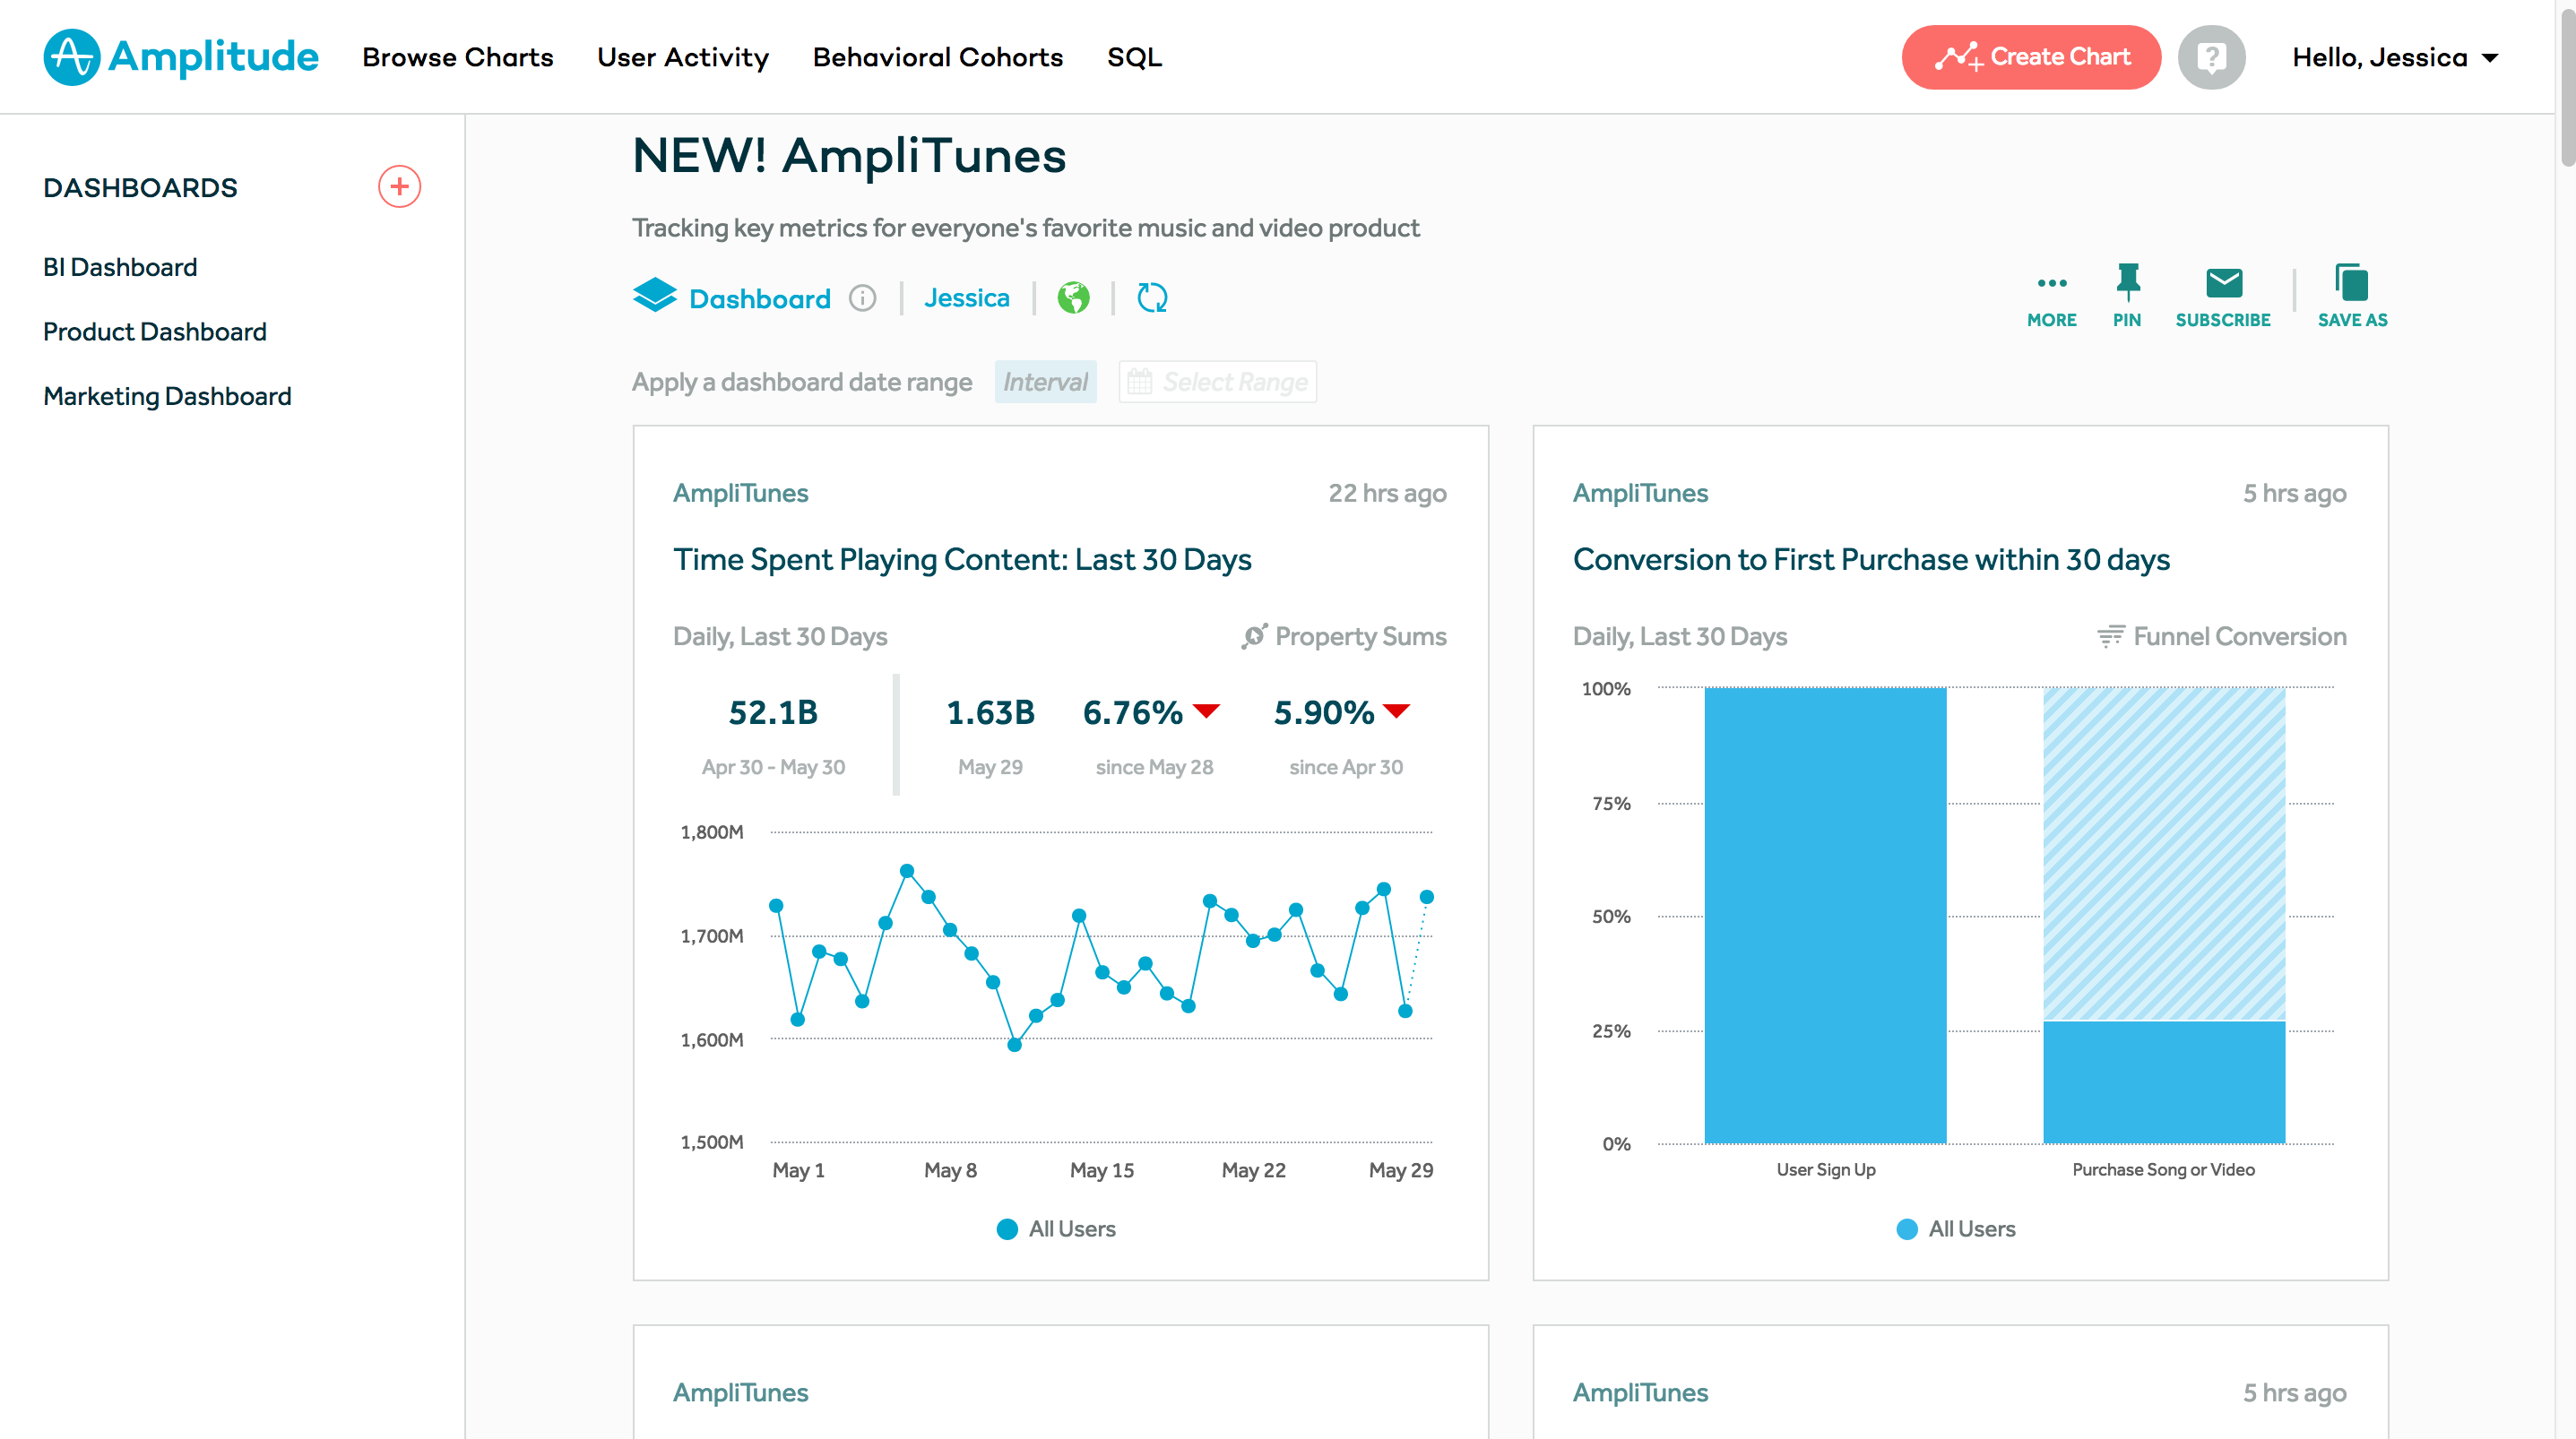 Customize dashboards to monitor and quickly access key metrics and charts.